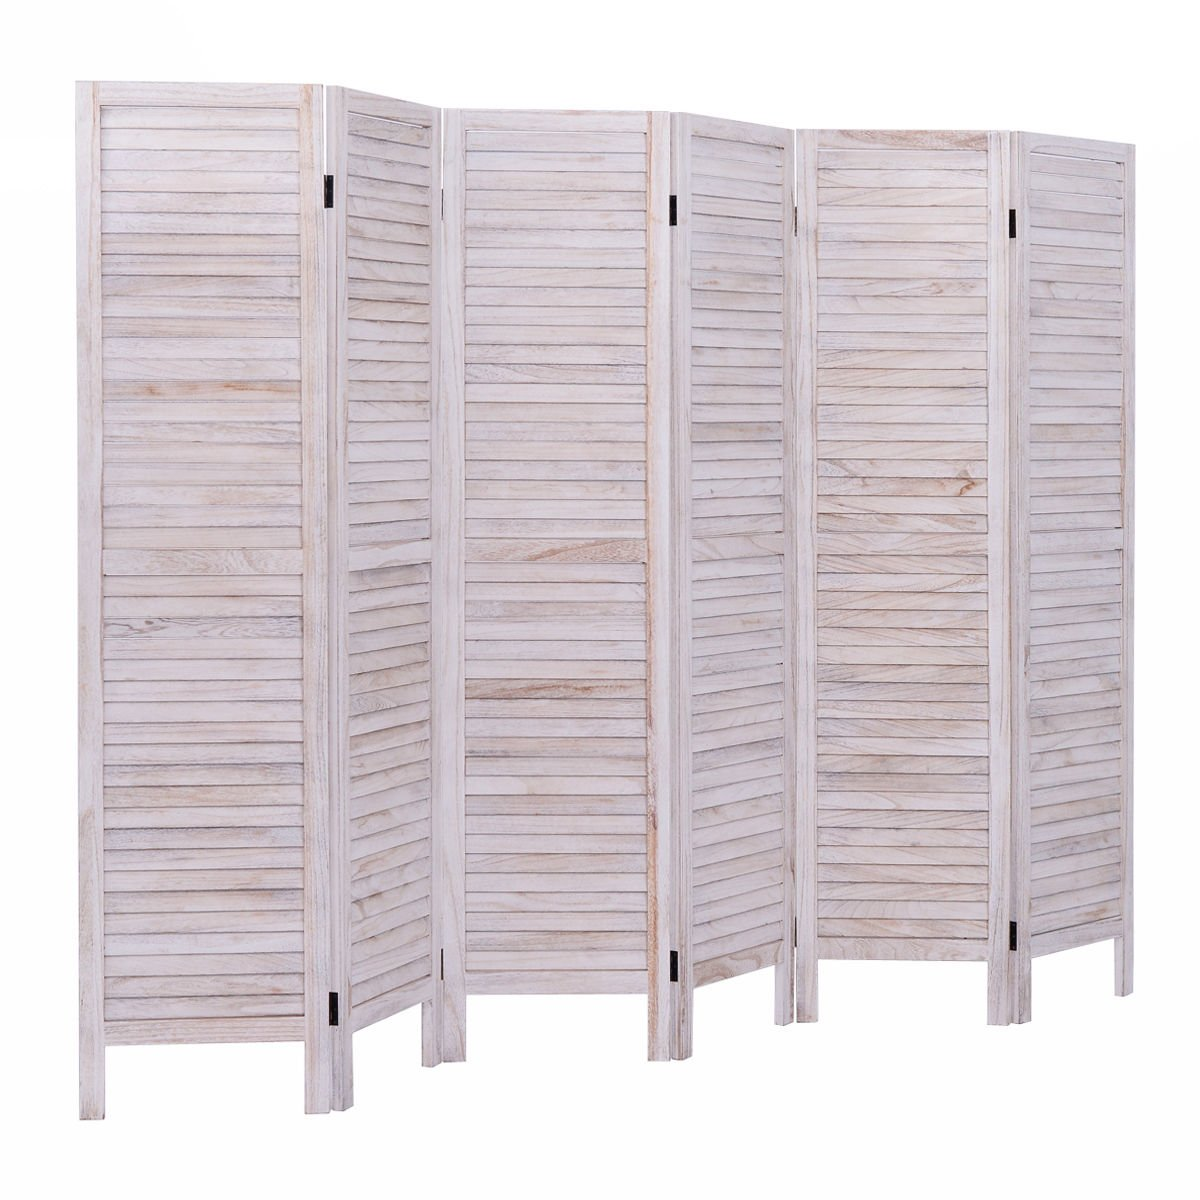 Giantex 6 Panel Screen Room Divider Wood Folding Oriental Freestanding Tall Partition Privacy Screen Room Divider (Natural)